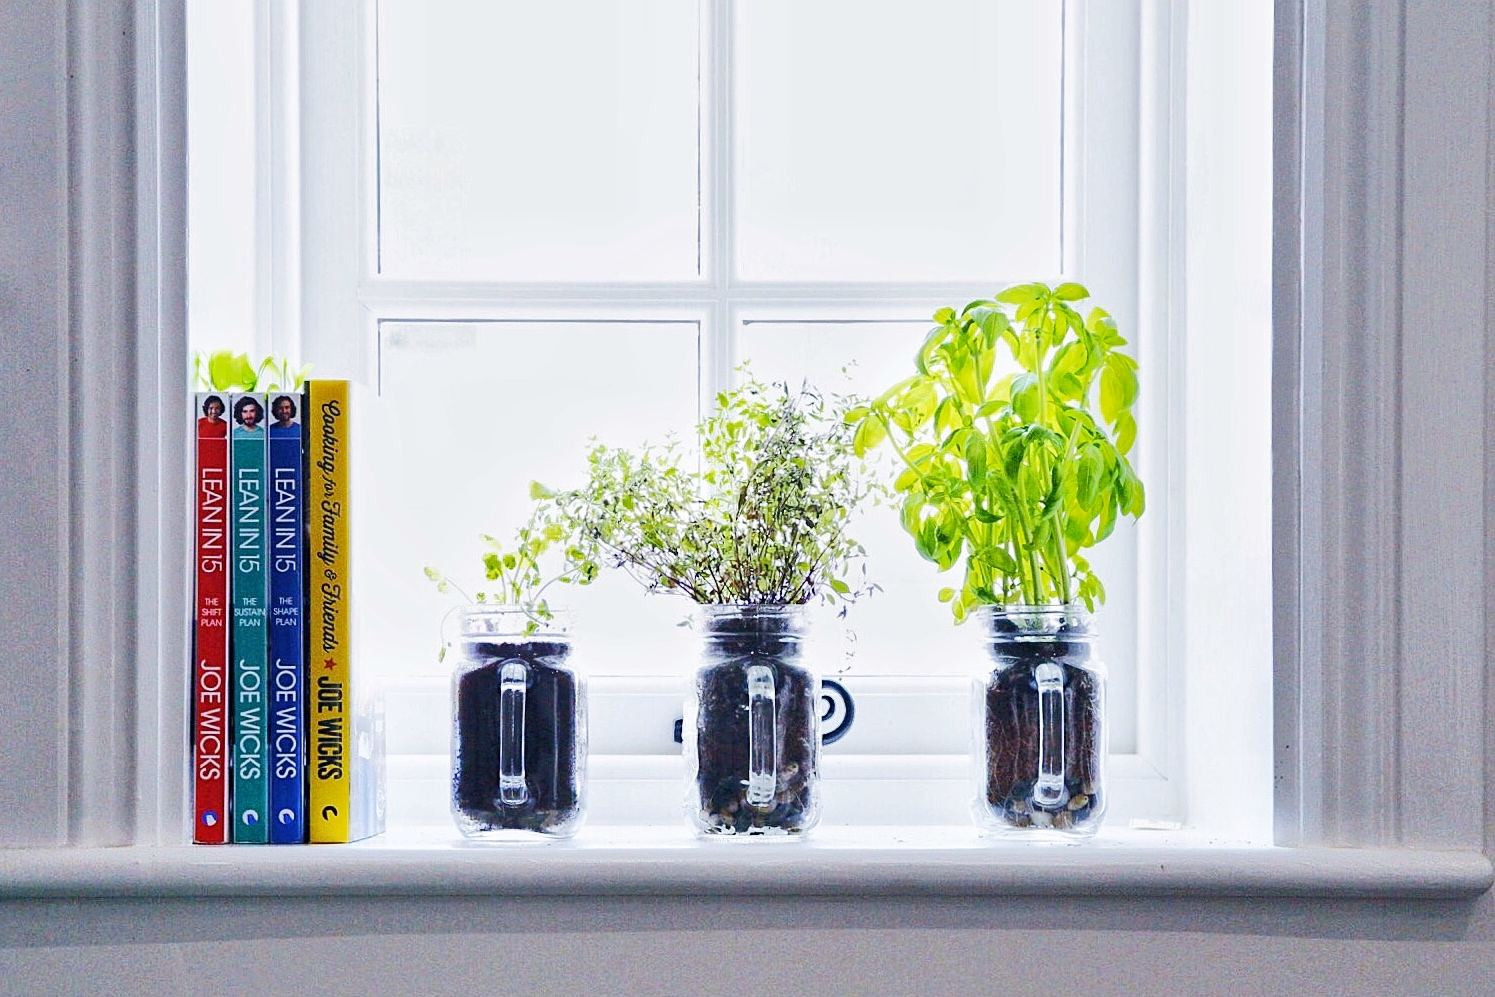 Lean in 15 Cookbooks on window ledge with herbs in mason jars